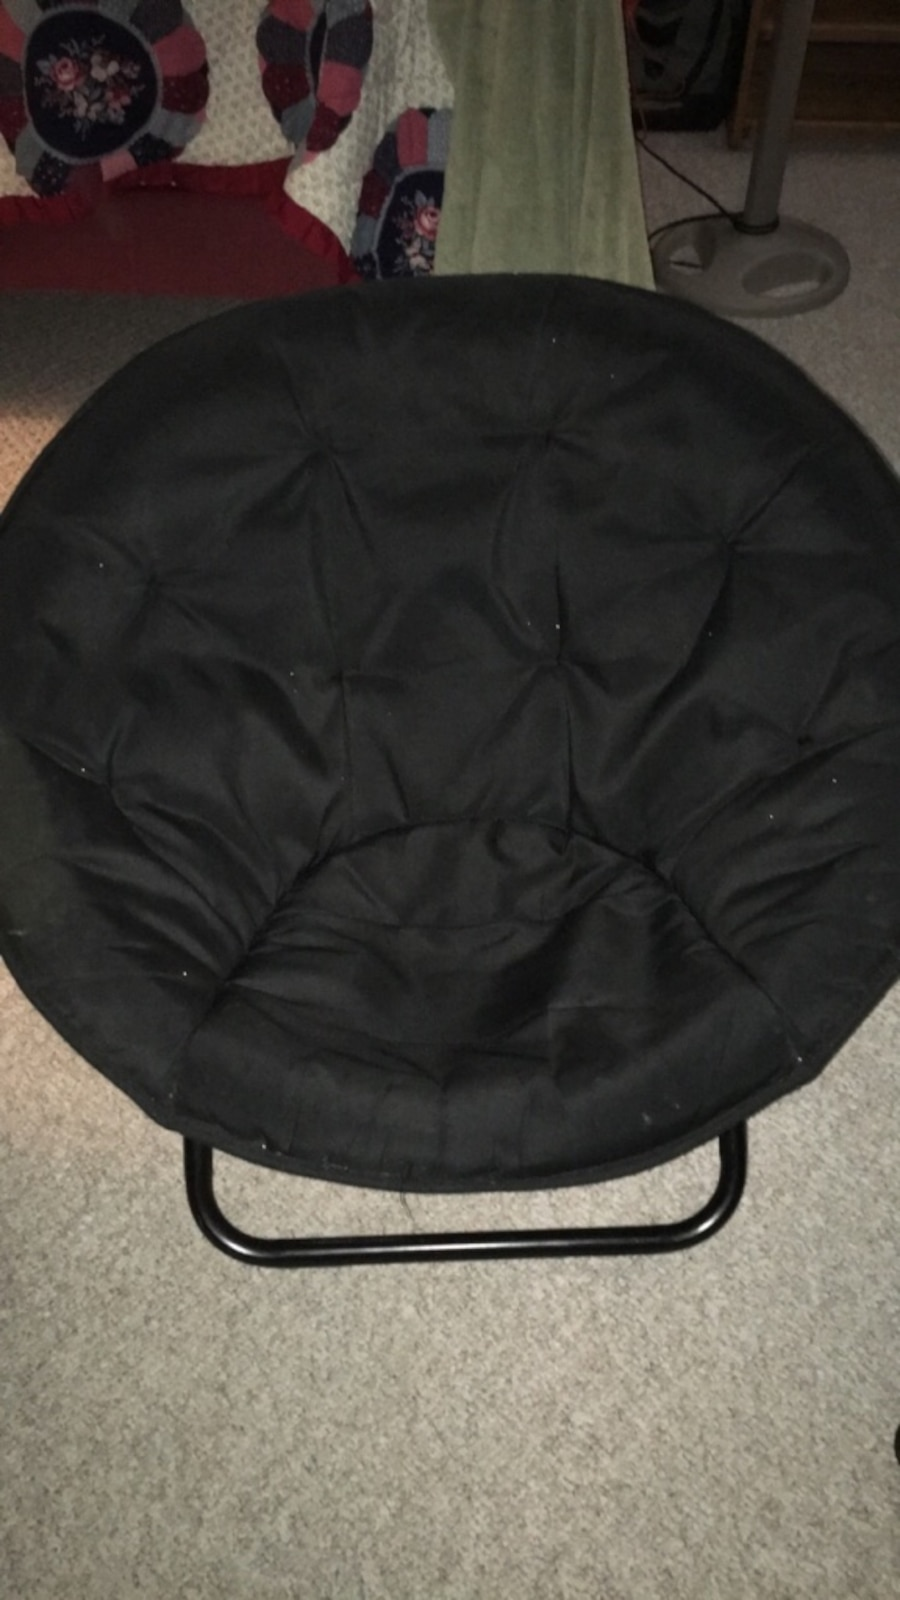 Black moon chair - Description Negotiable Price Black Moon Chair In Great Condition